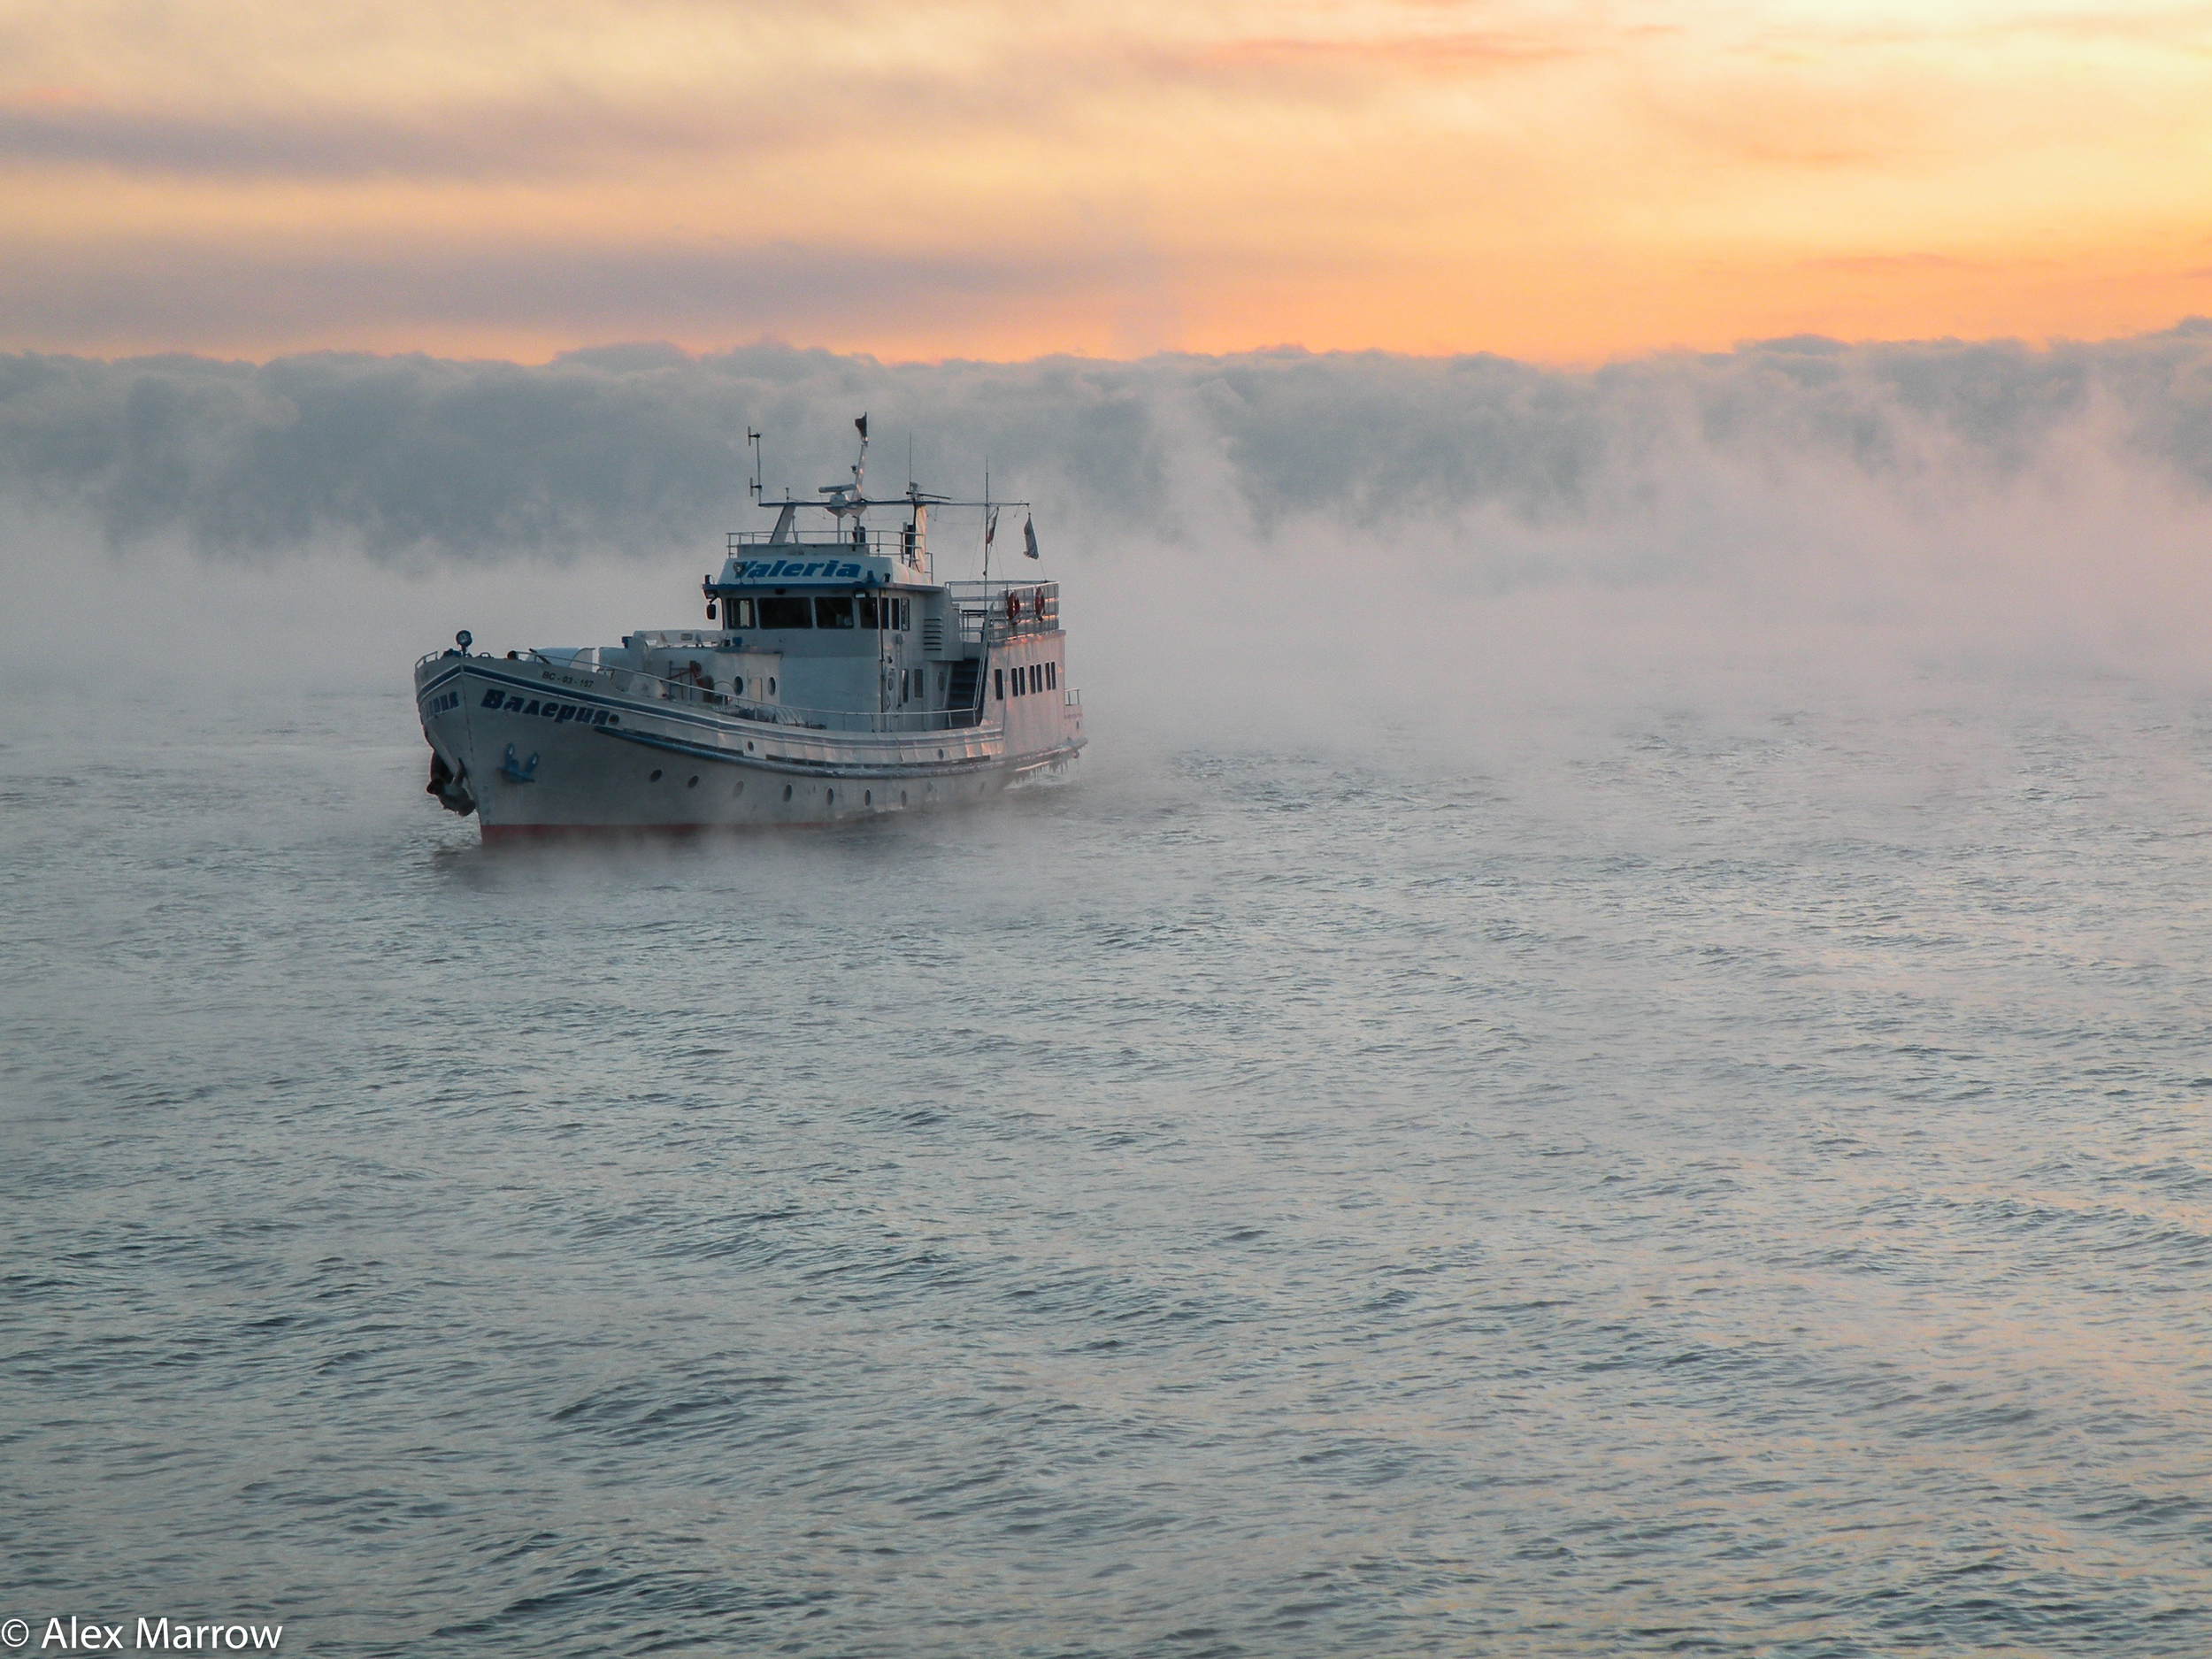 A Boat Cuts Through the Clouds on Lake Baikal